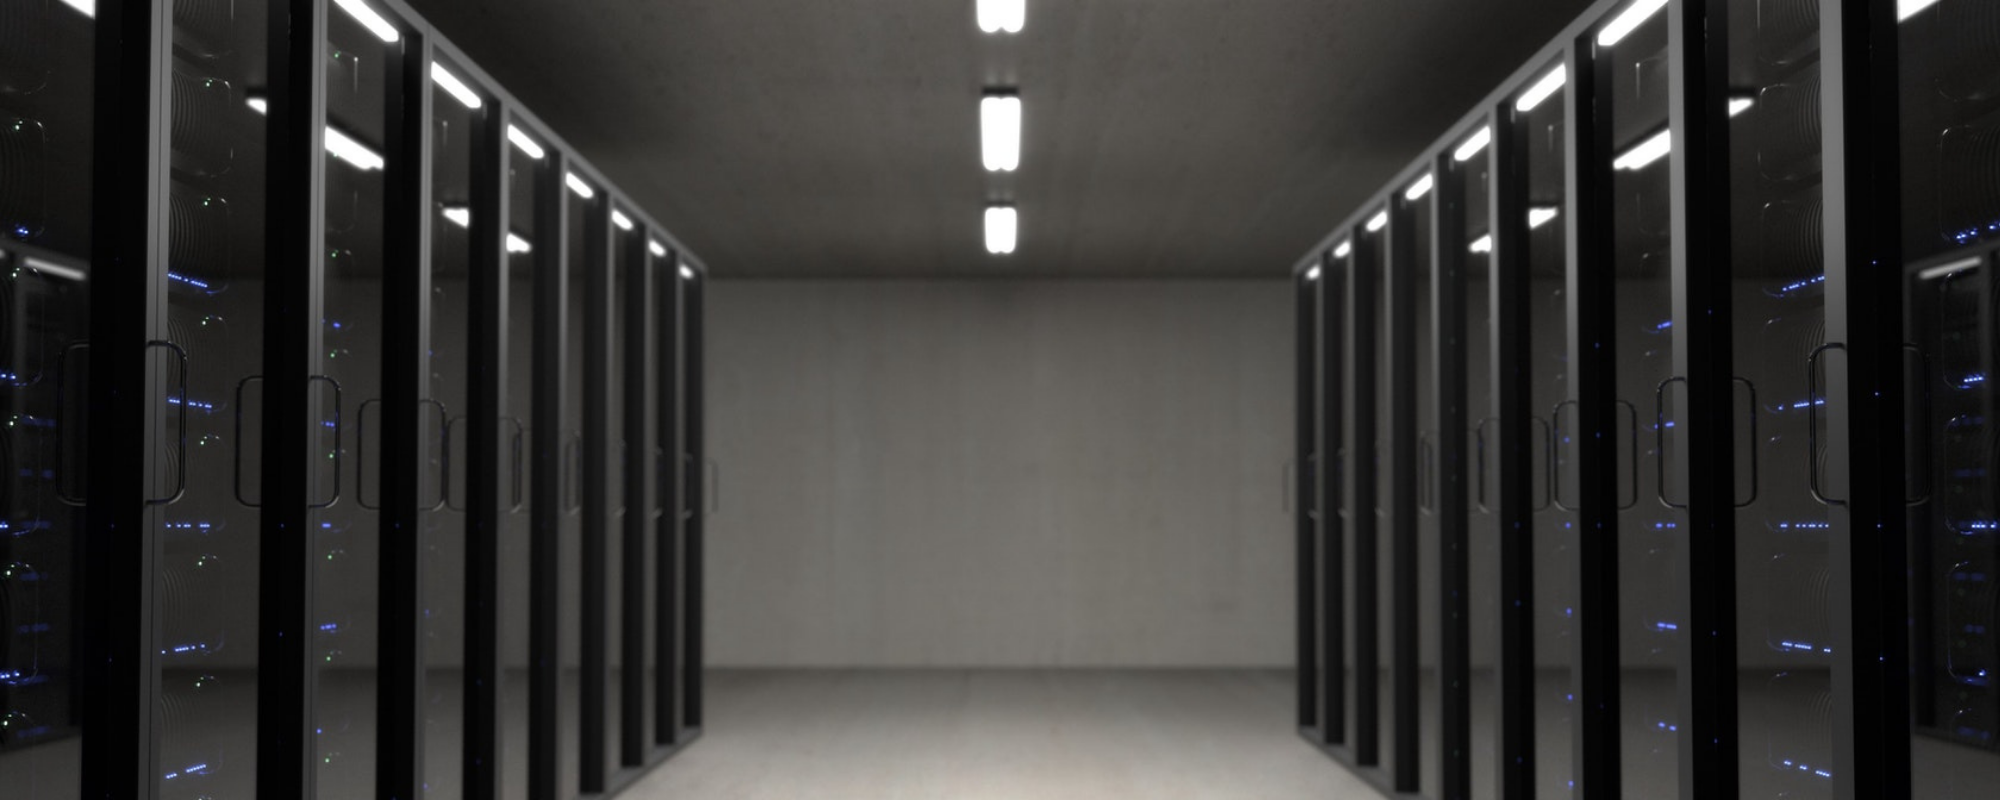 Data centre for robotic process automation